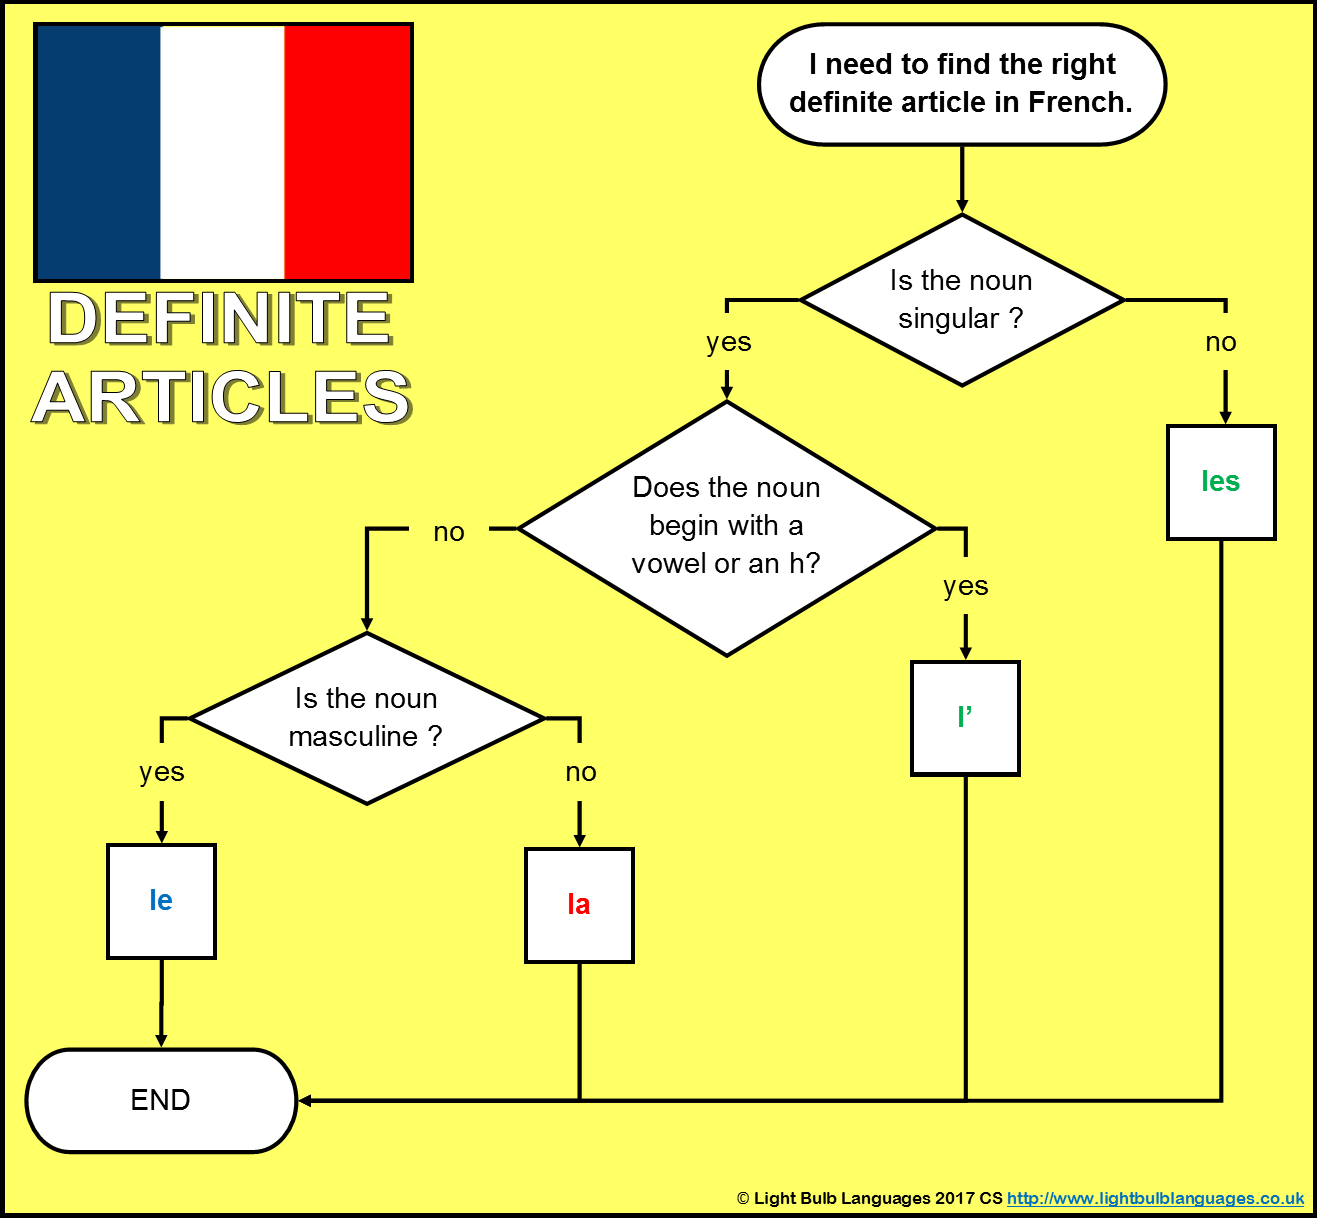 French Definite Articles Flowchart